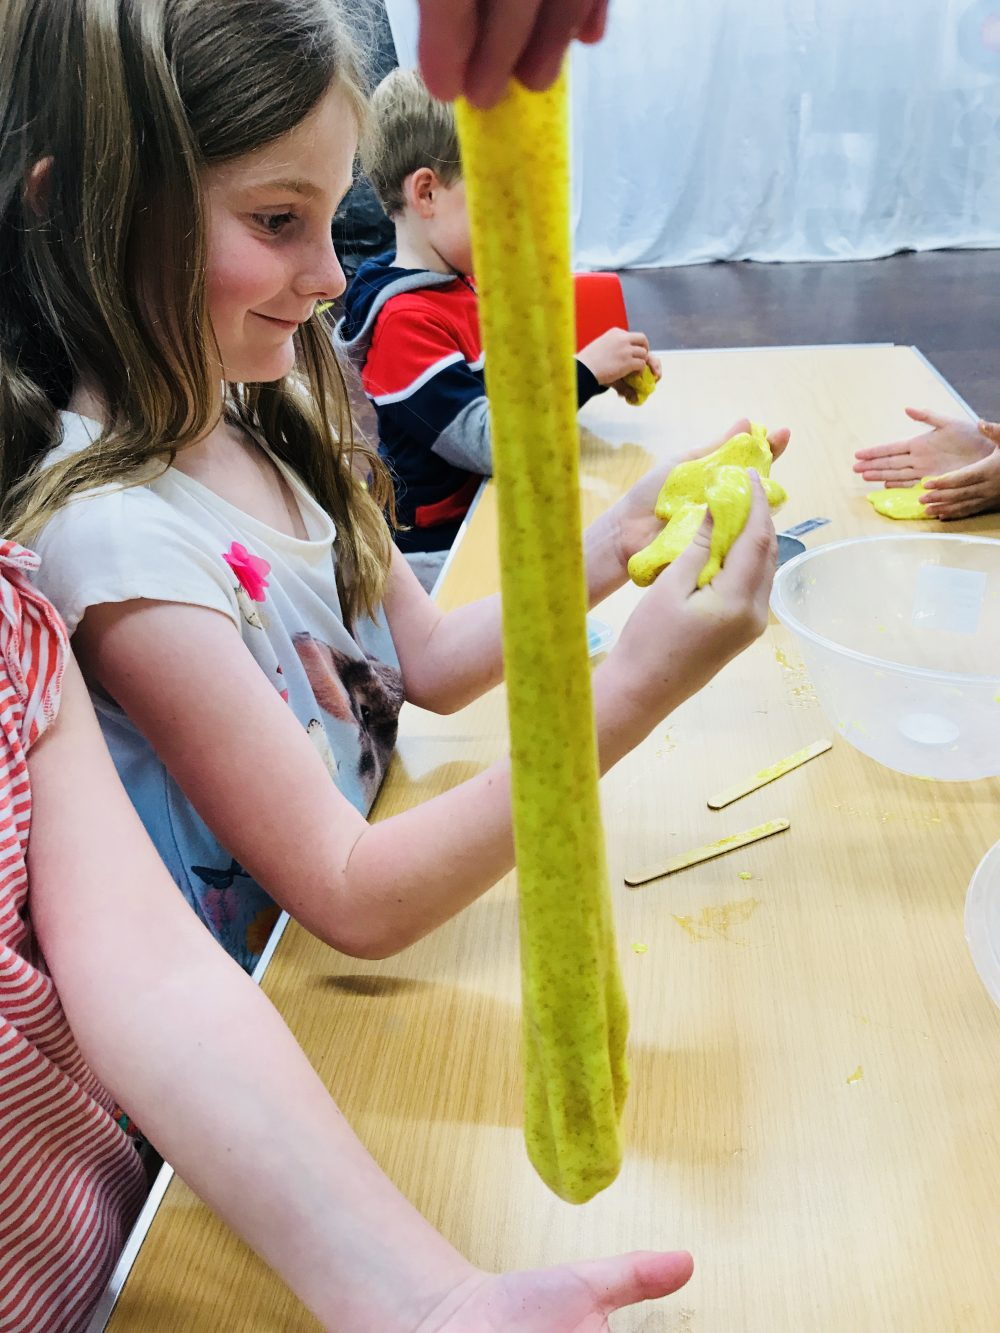 https://indigoartsandcrafts.co.uk/wp-content/uploads/2018/07/May-half-term-slime-stretched-e1531868534335.jpg